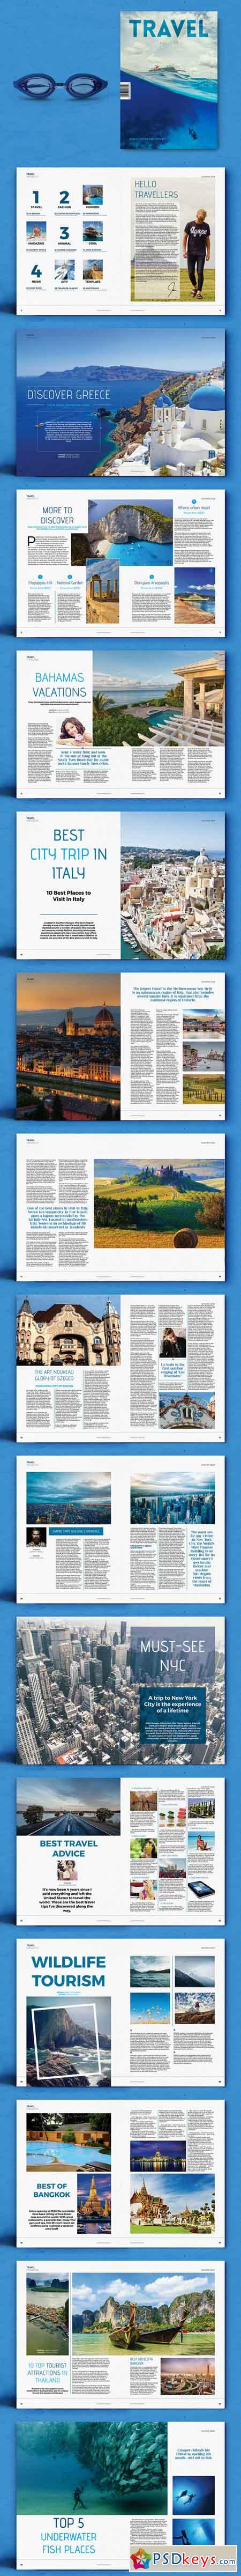 Travel Magazine 955250